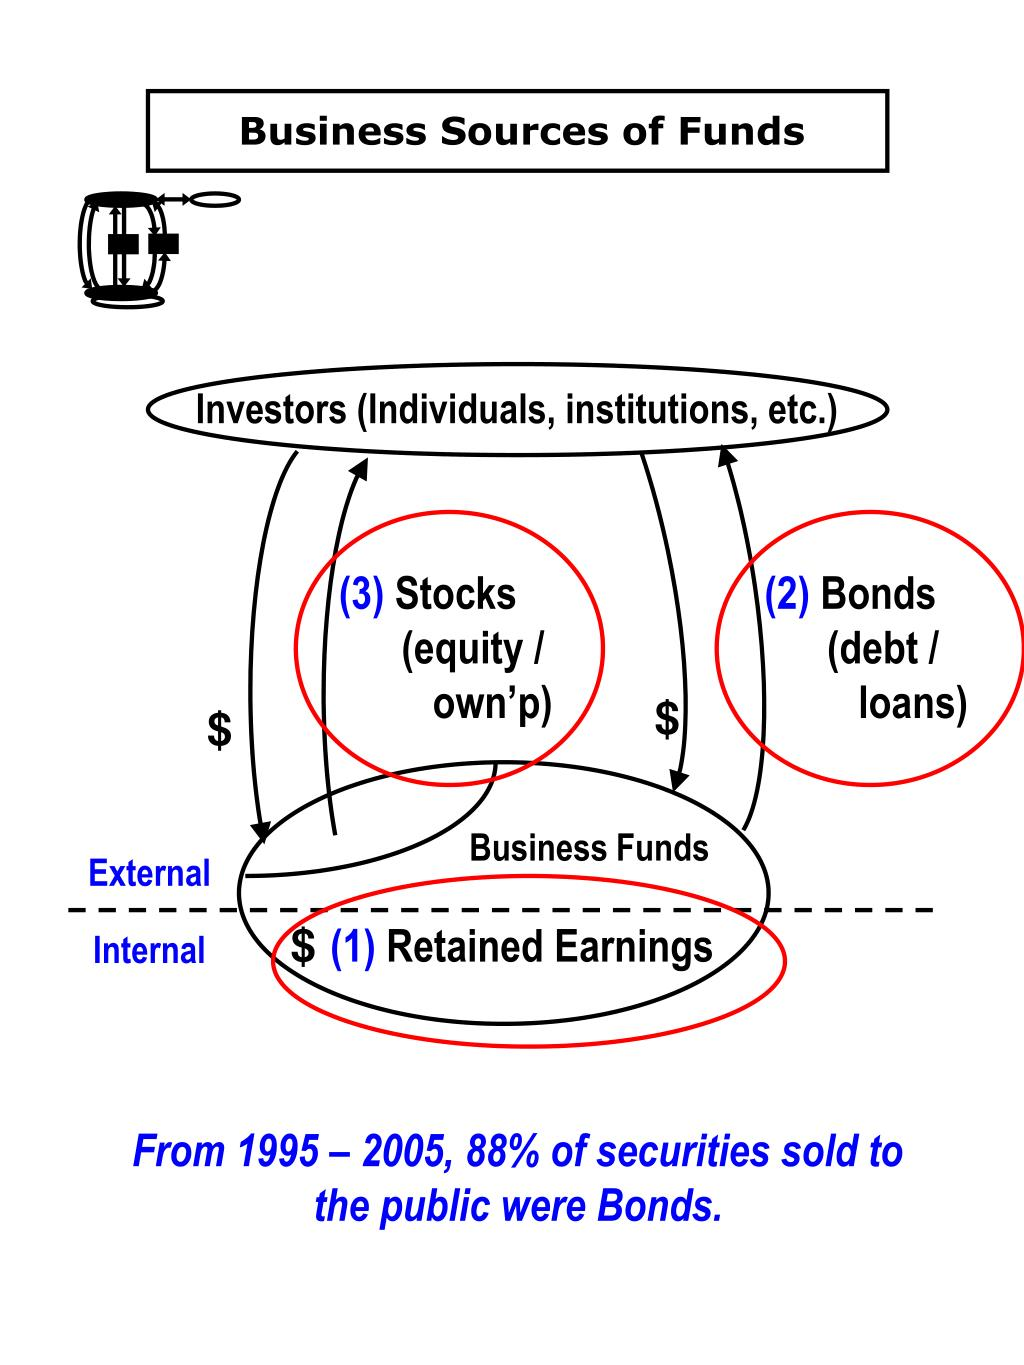 Business Sources of Funds